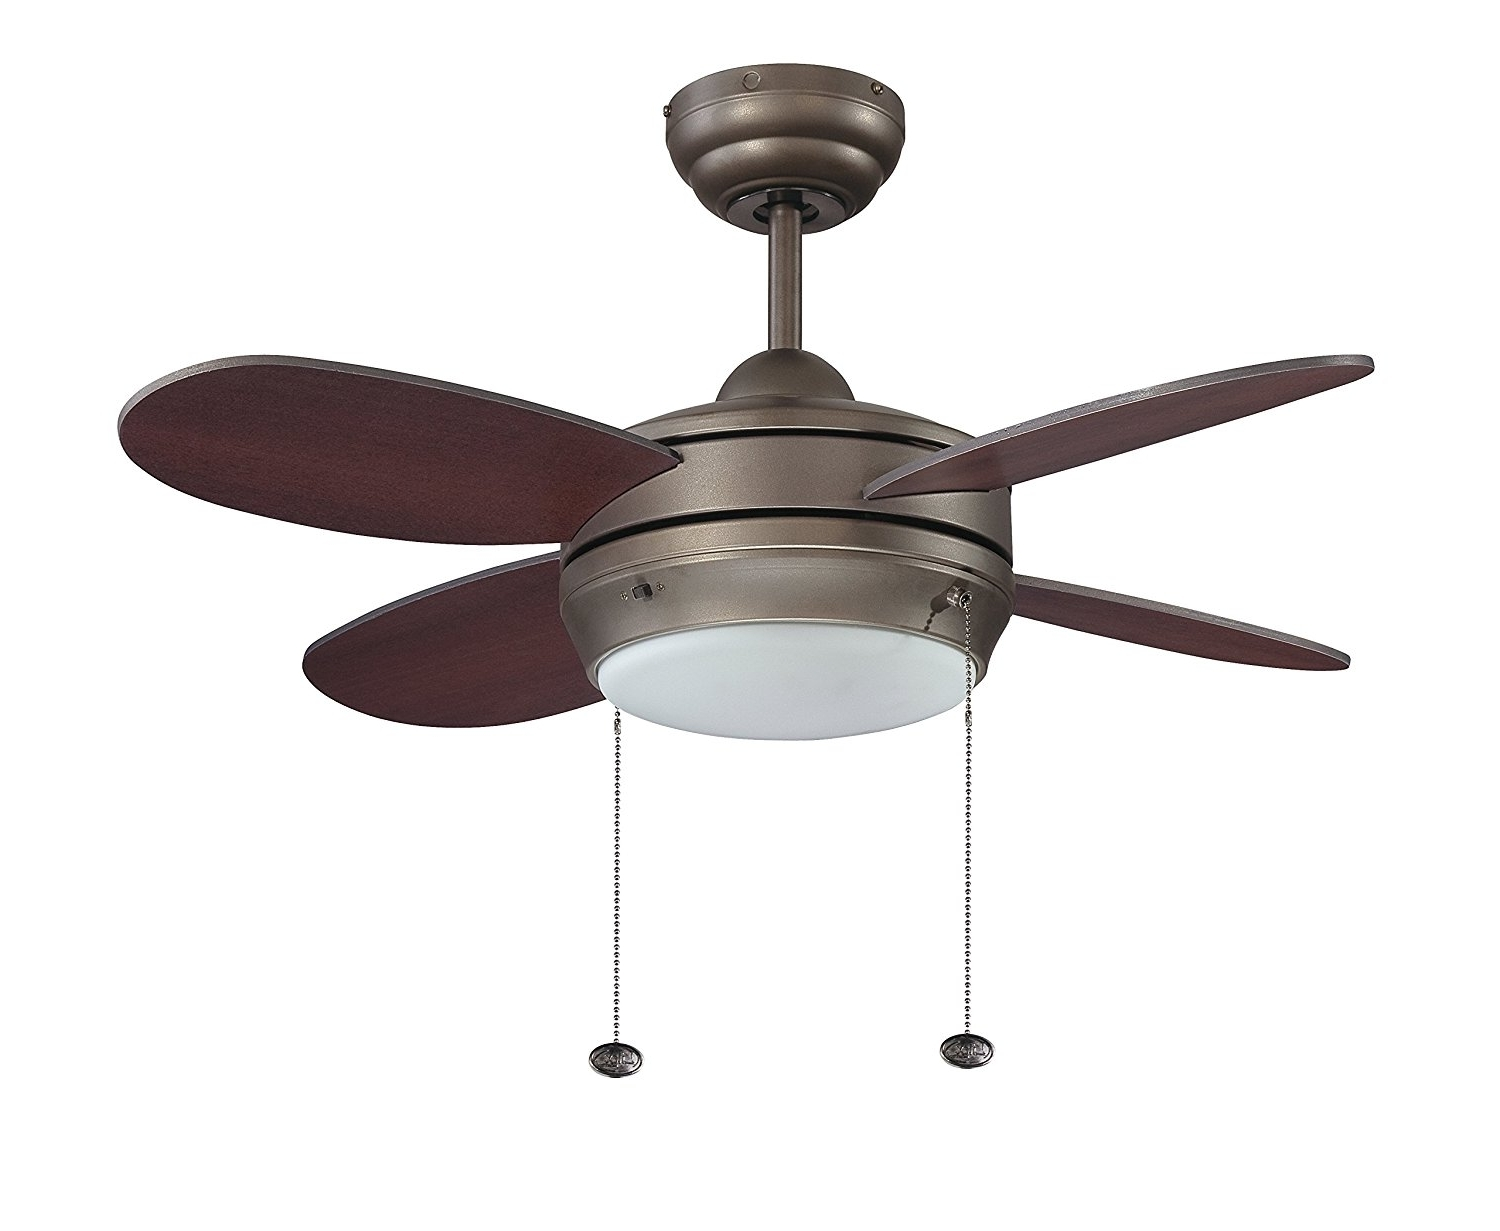 Trendy 24 Inch Outdoor Ceiling Fans With Light Pertaining To 24 Inch Ceiling Fan With Light Lowes Ceiling Lights Rustic Ceiling (View 18 of 20)